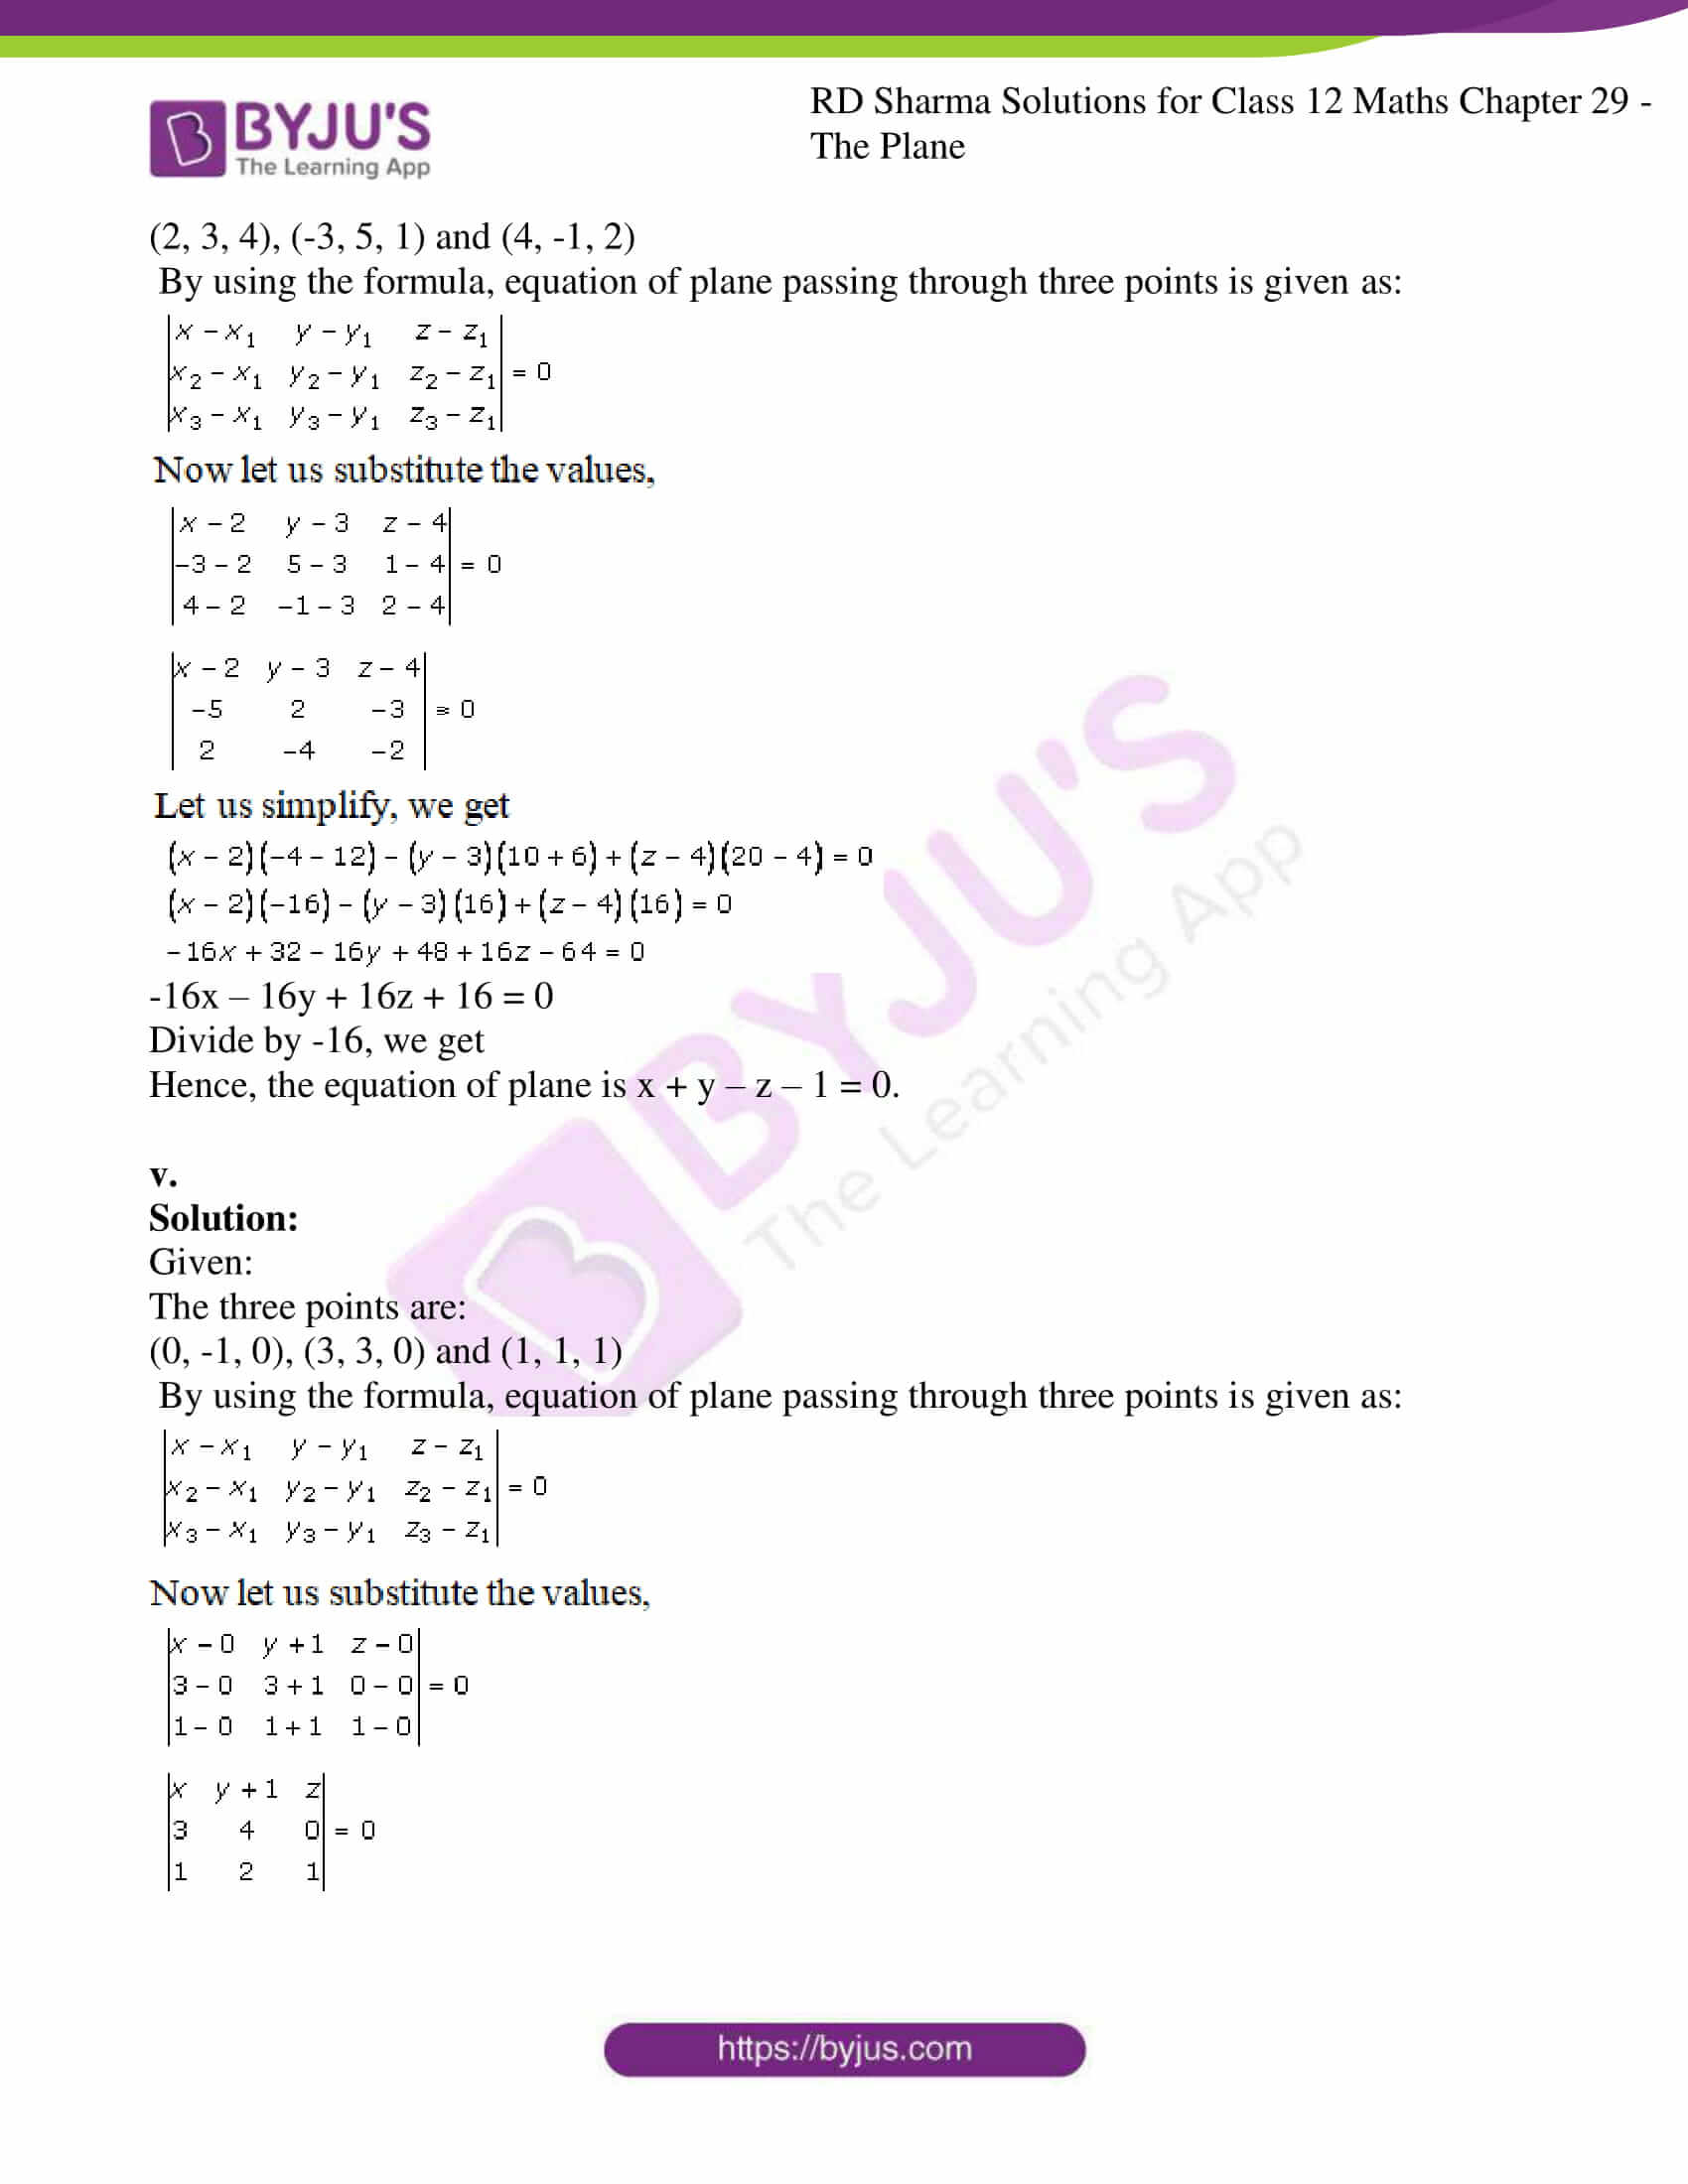 rd sharma solutions for class 12 maths chapter 29 ex 1 3